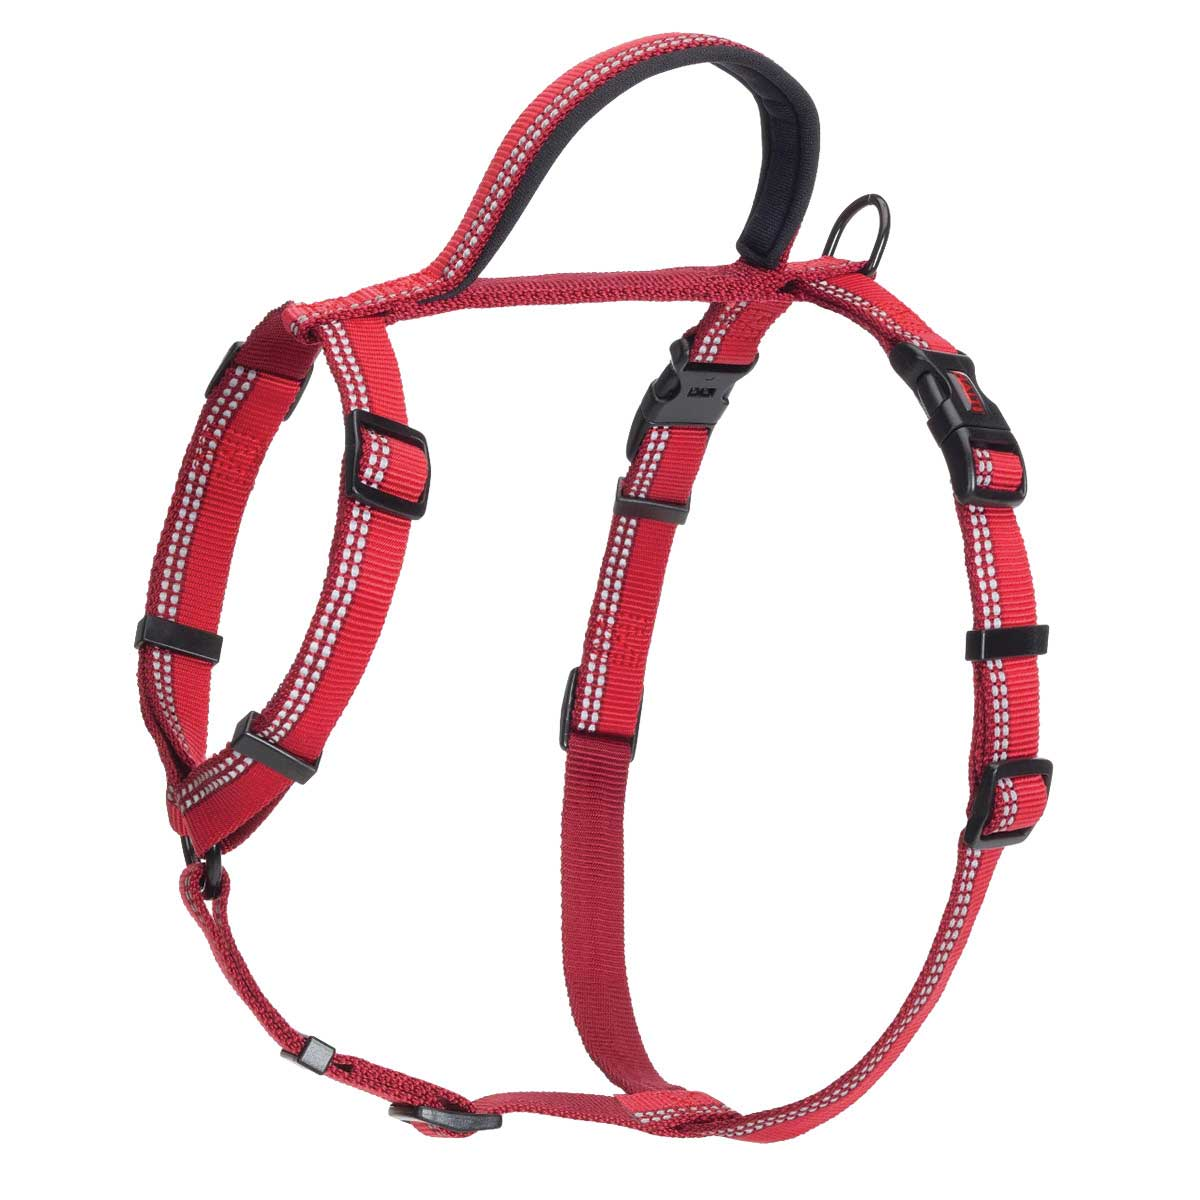 X-Small Red Halti Walking Harness 14 inches -18 inches